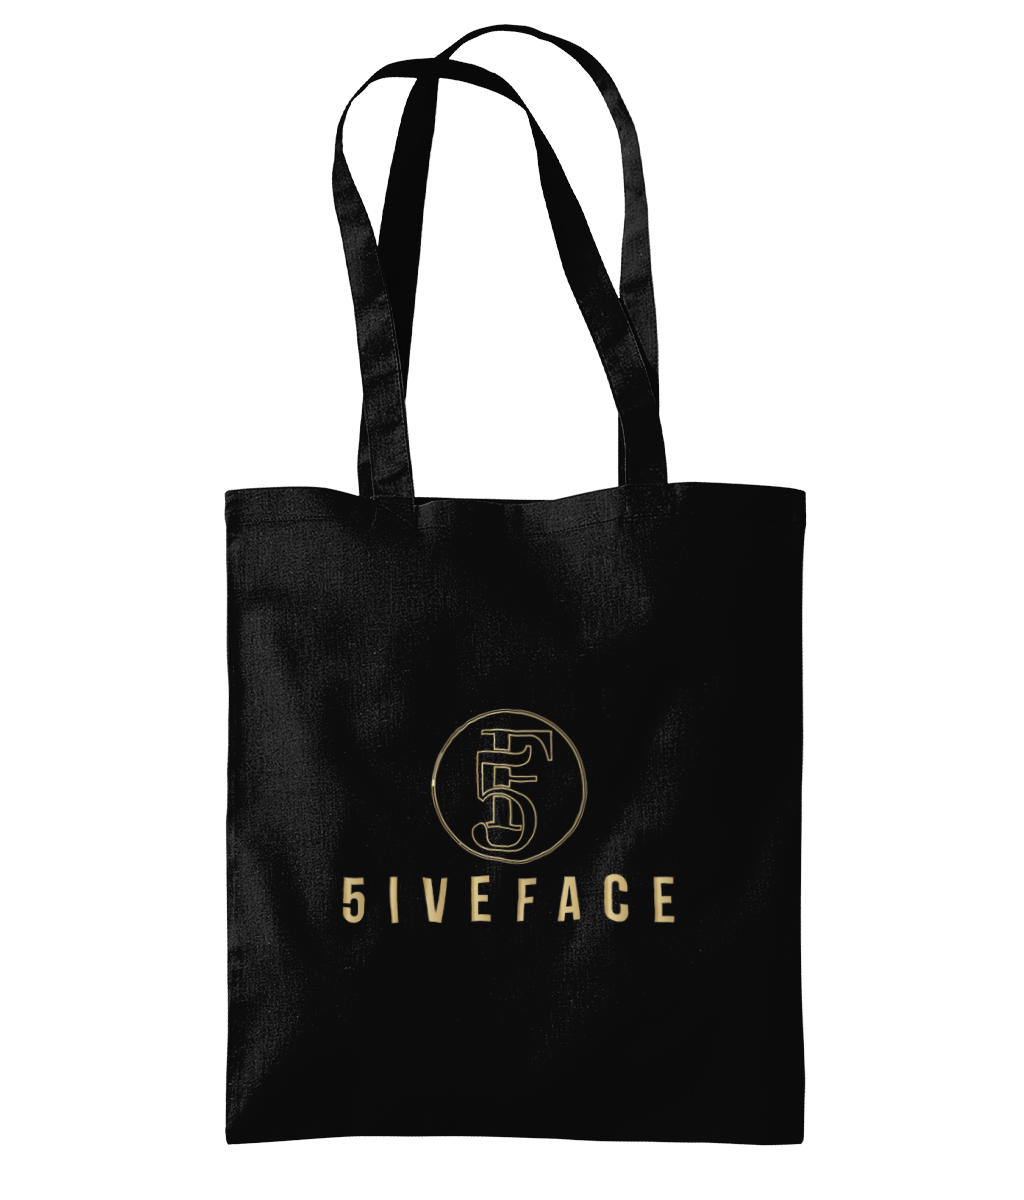 Carry On Tote Bag - 5iveFace